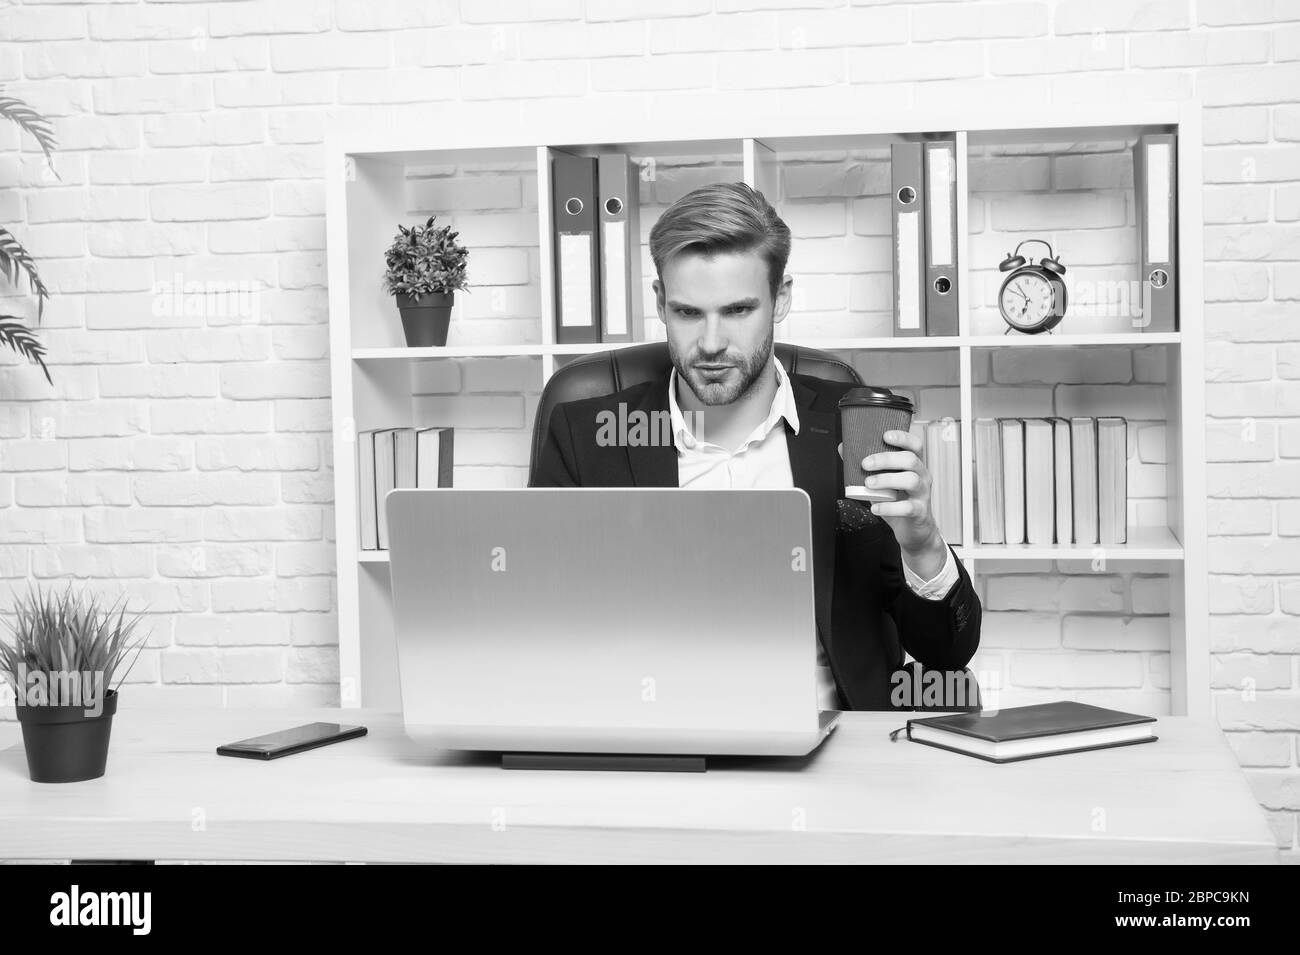 Building Online Business Business Man Work On Computer Professional Business Coach In Office Blogger Virtual Assistant Web Designer Or Developer Online Business Communication Over Coffee Cup Stock Photo Alamy